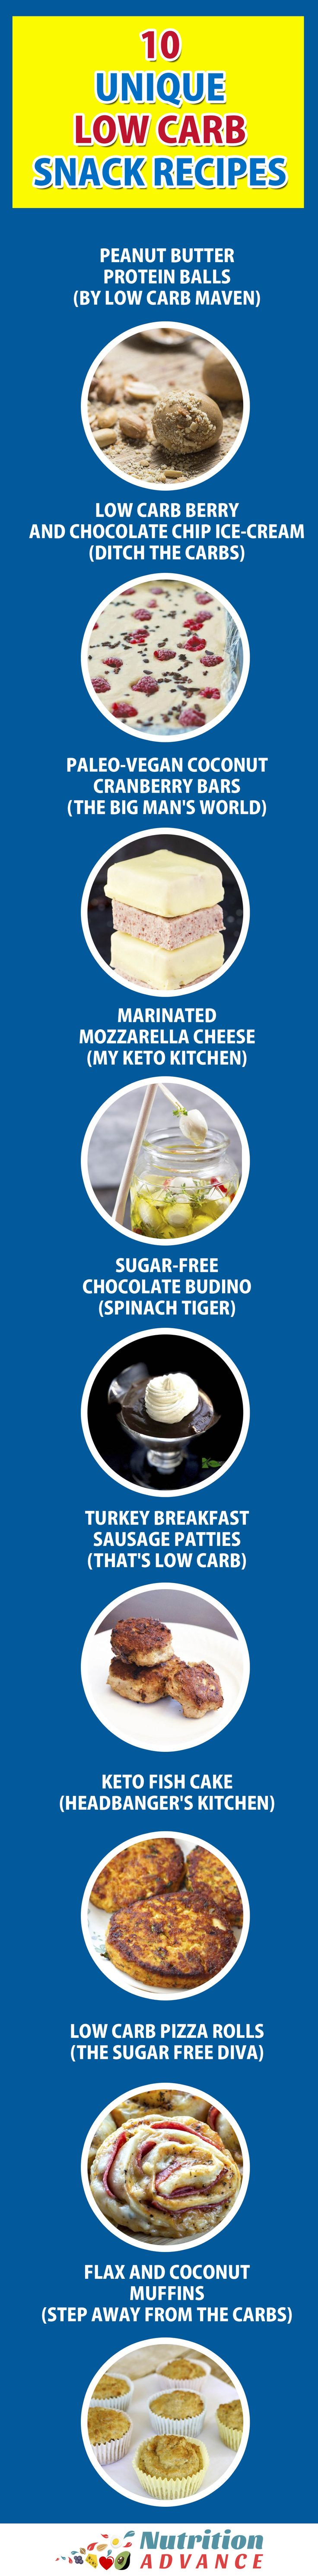 346 best Low Carb Snacks images on Pinterest | Keto recipes, Low ...